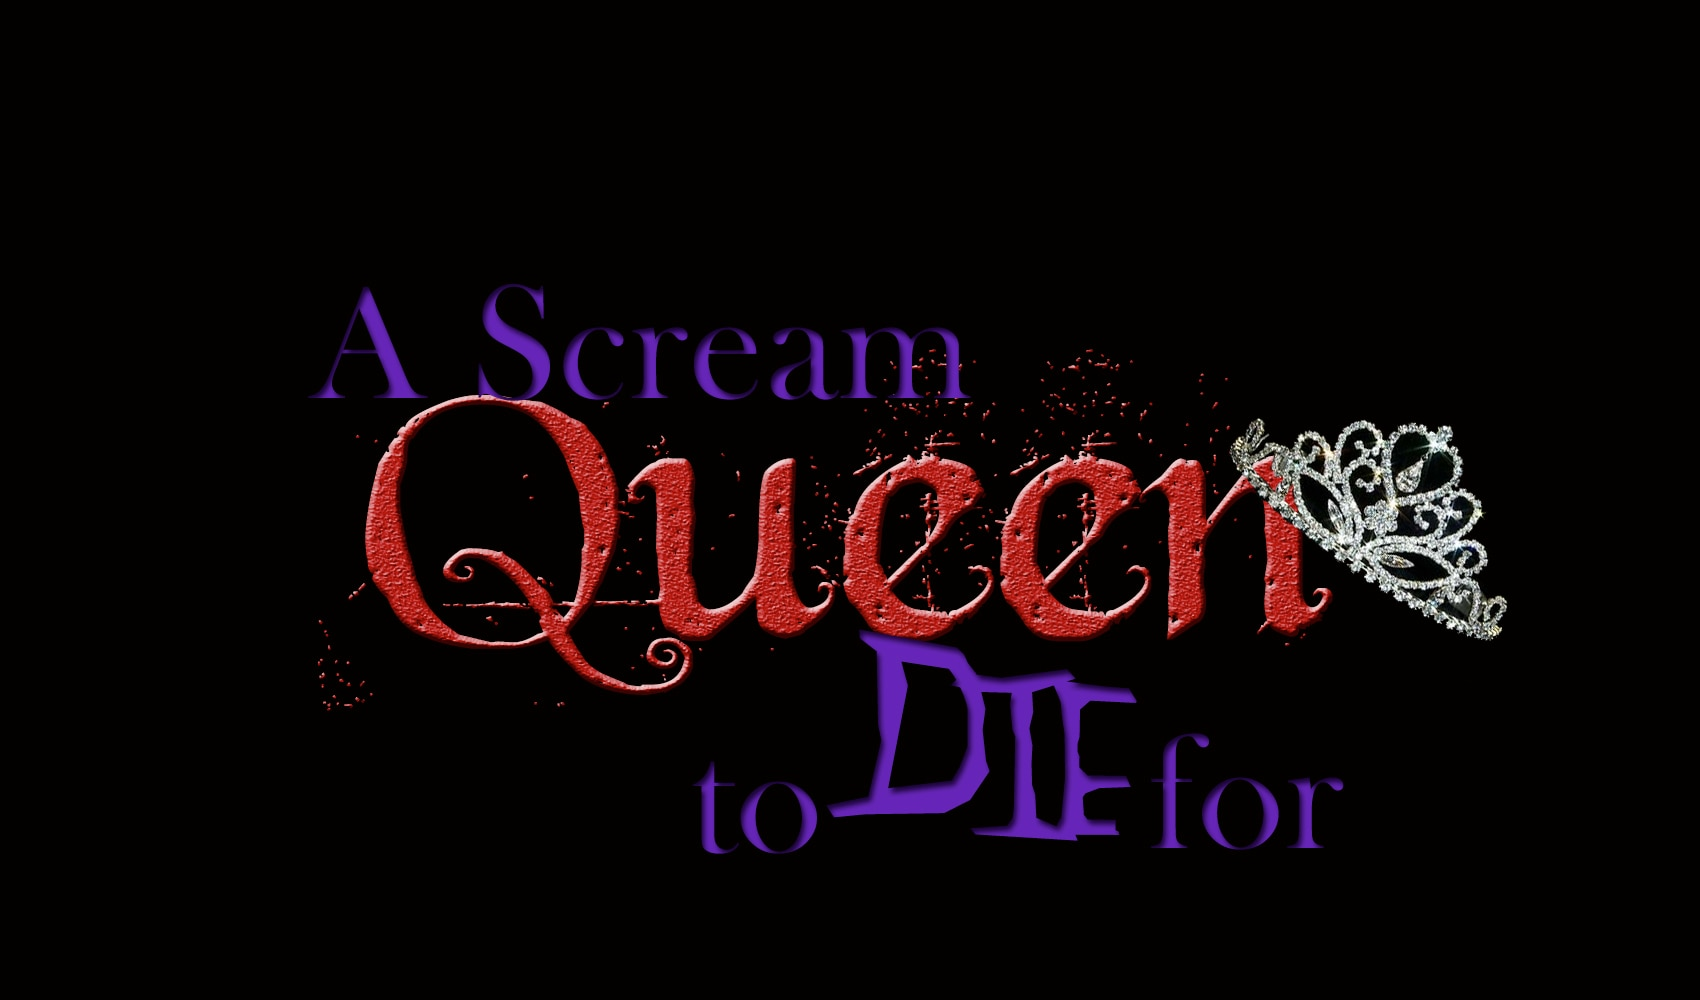 Scream Queen to Die For